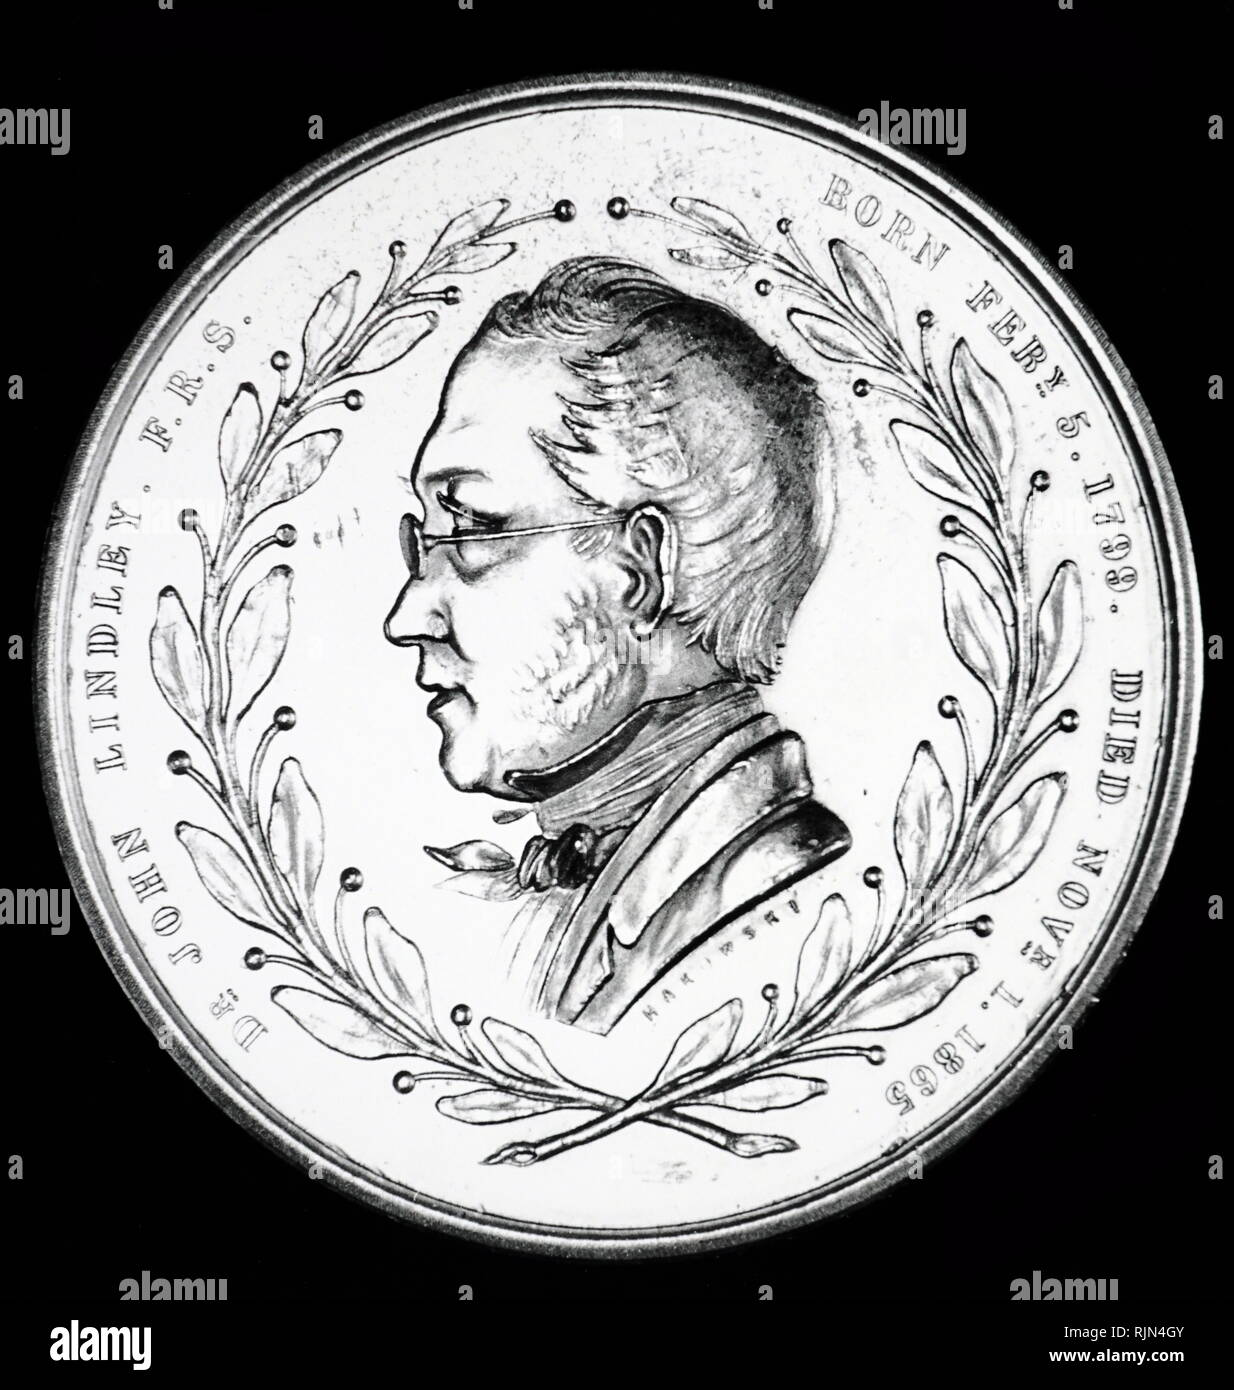 obverse of the Royal Horticultural Society's Lindley medal, showing John Lindley, (1799 - 1865); English botanist, gardener and orchidologist. Stock Photo